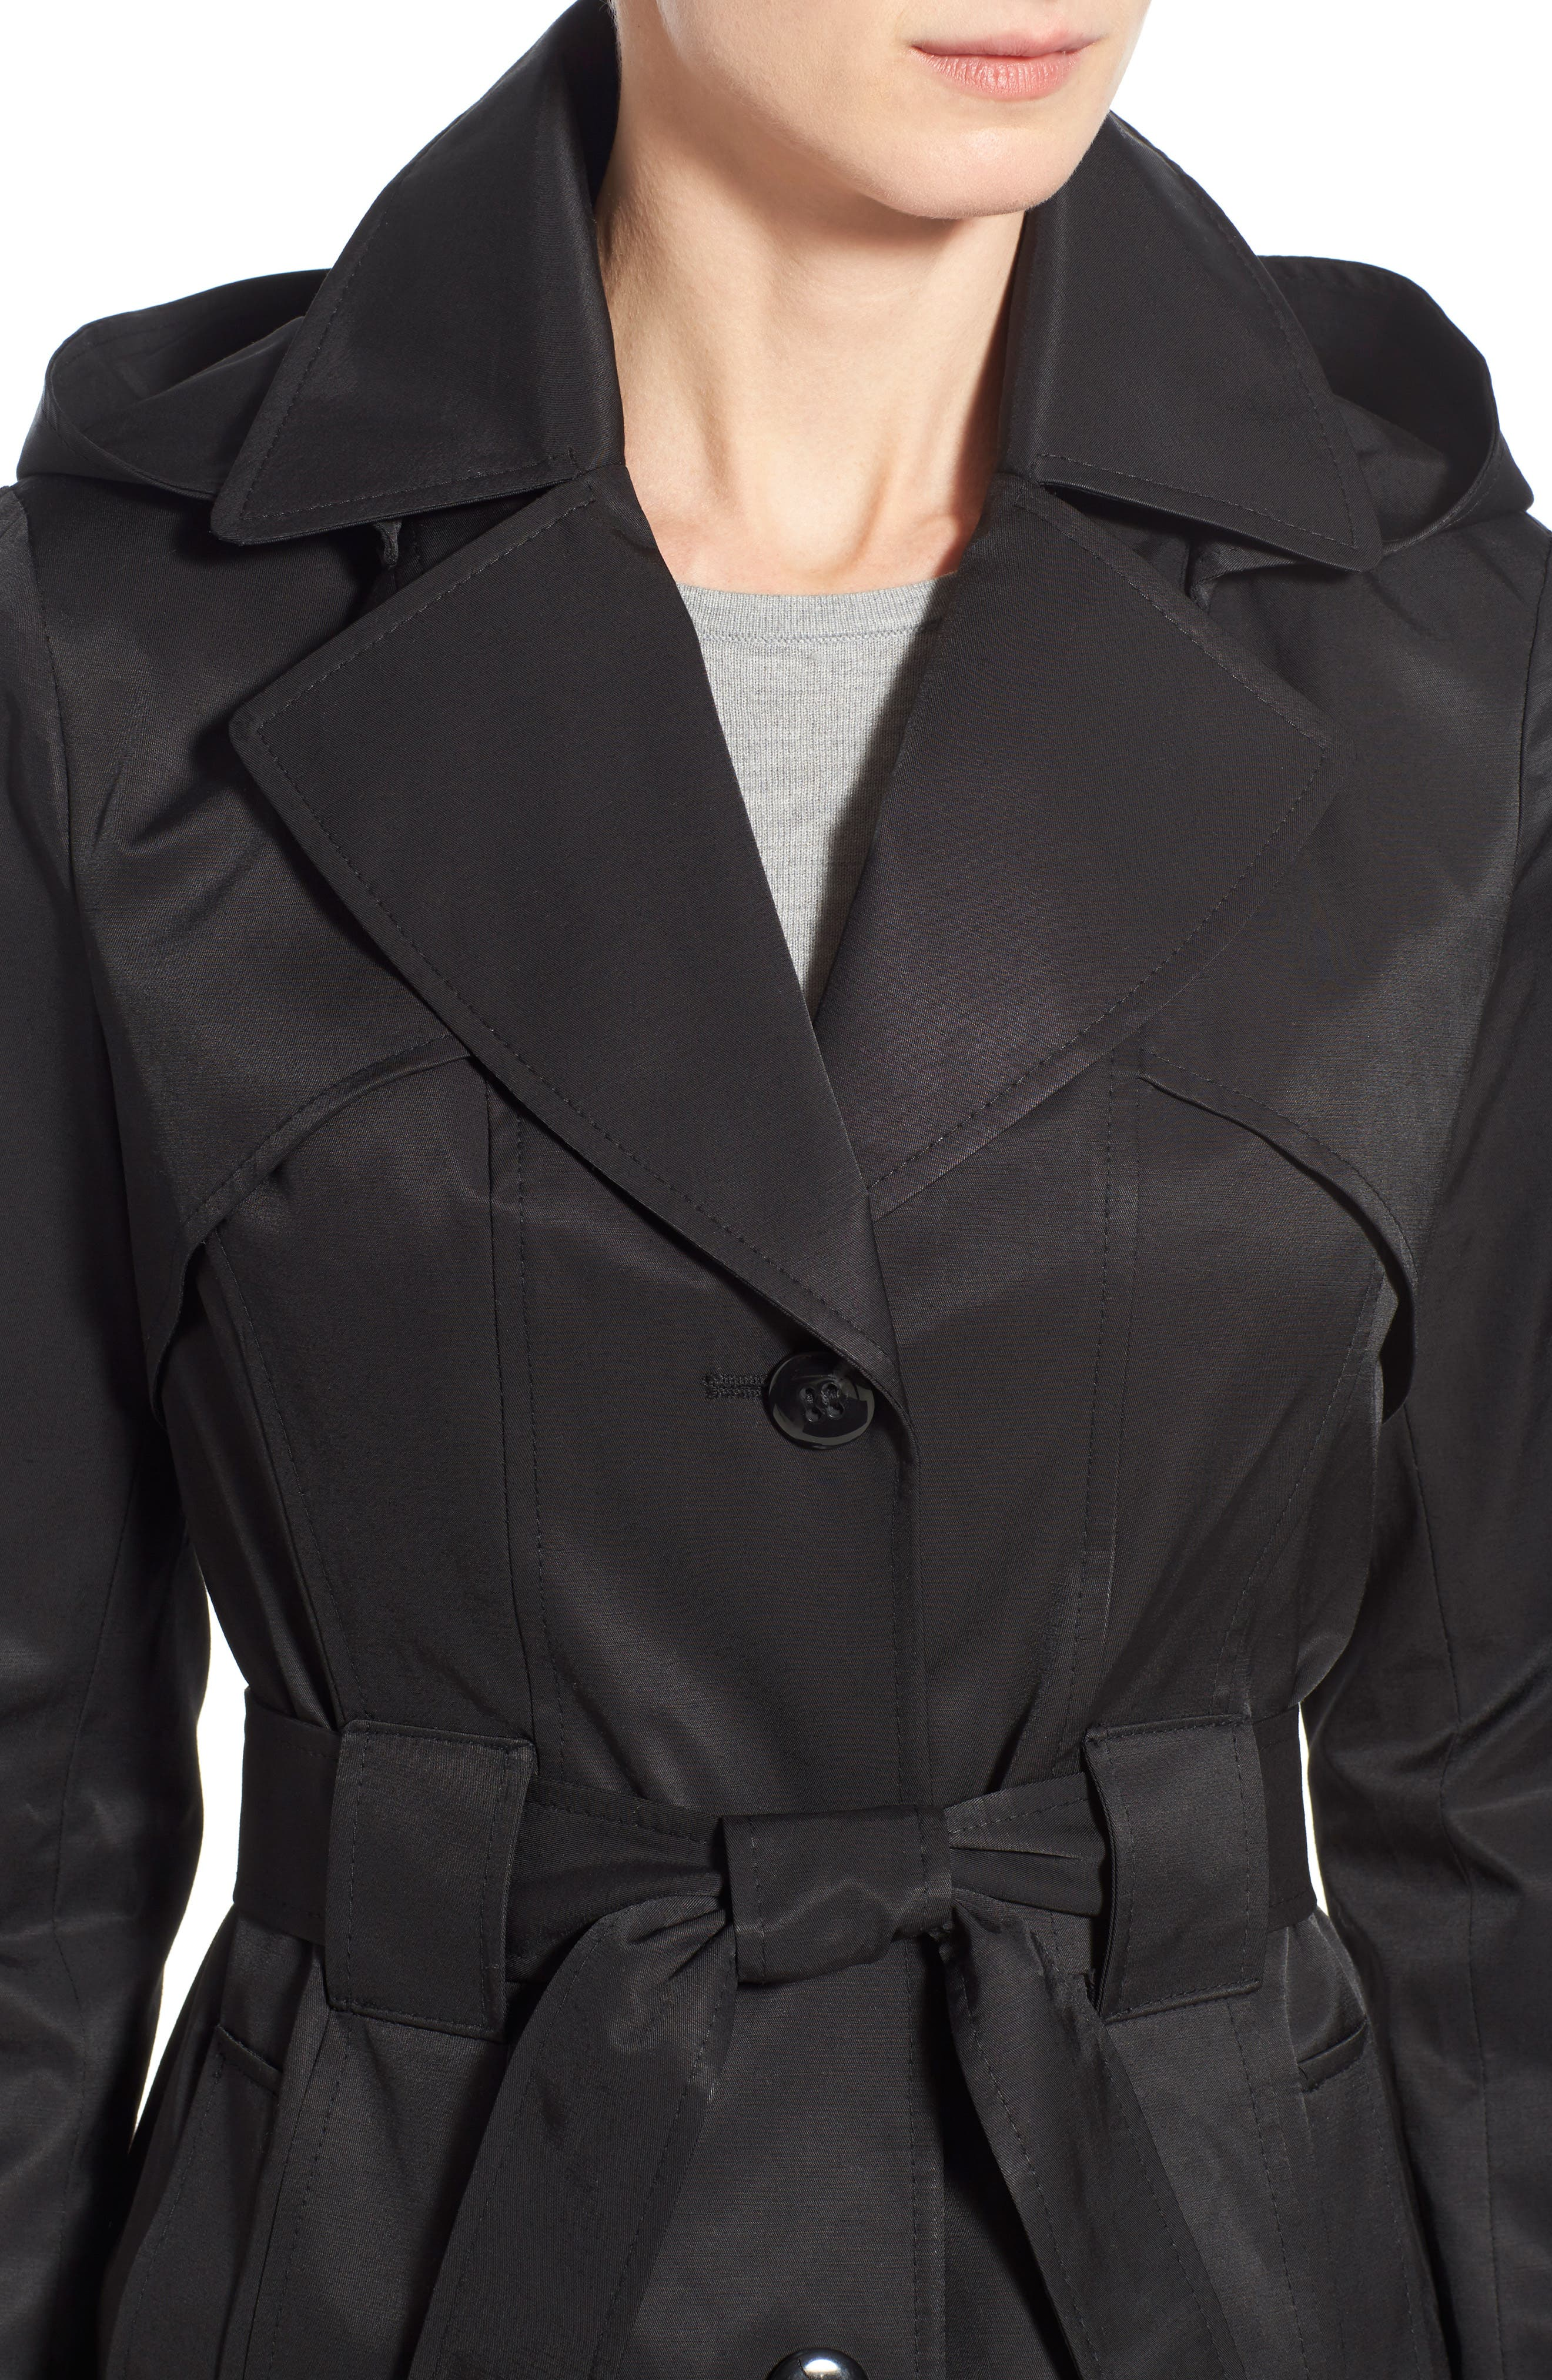 'Scarpa' Hooded Single Breasted Trench Coat,                             Alternate thumbnail 35, color,